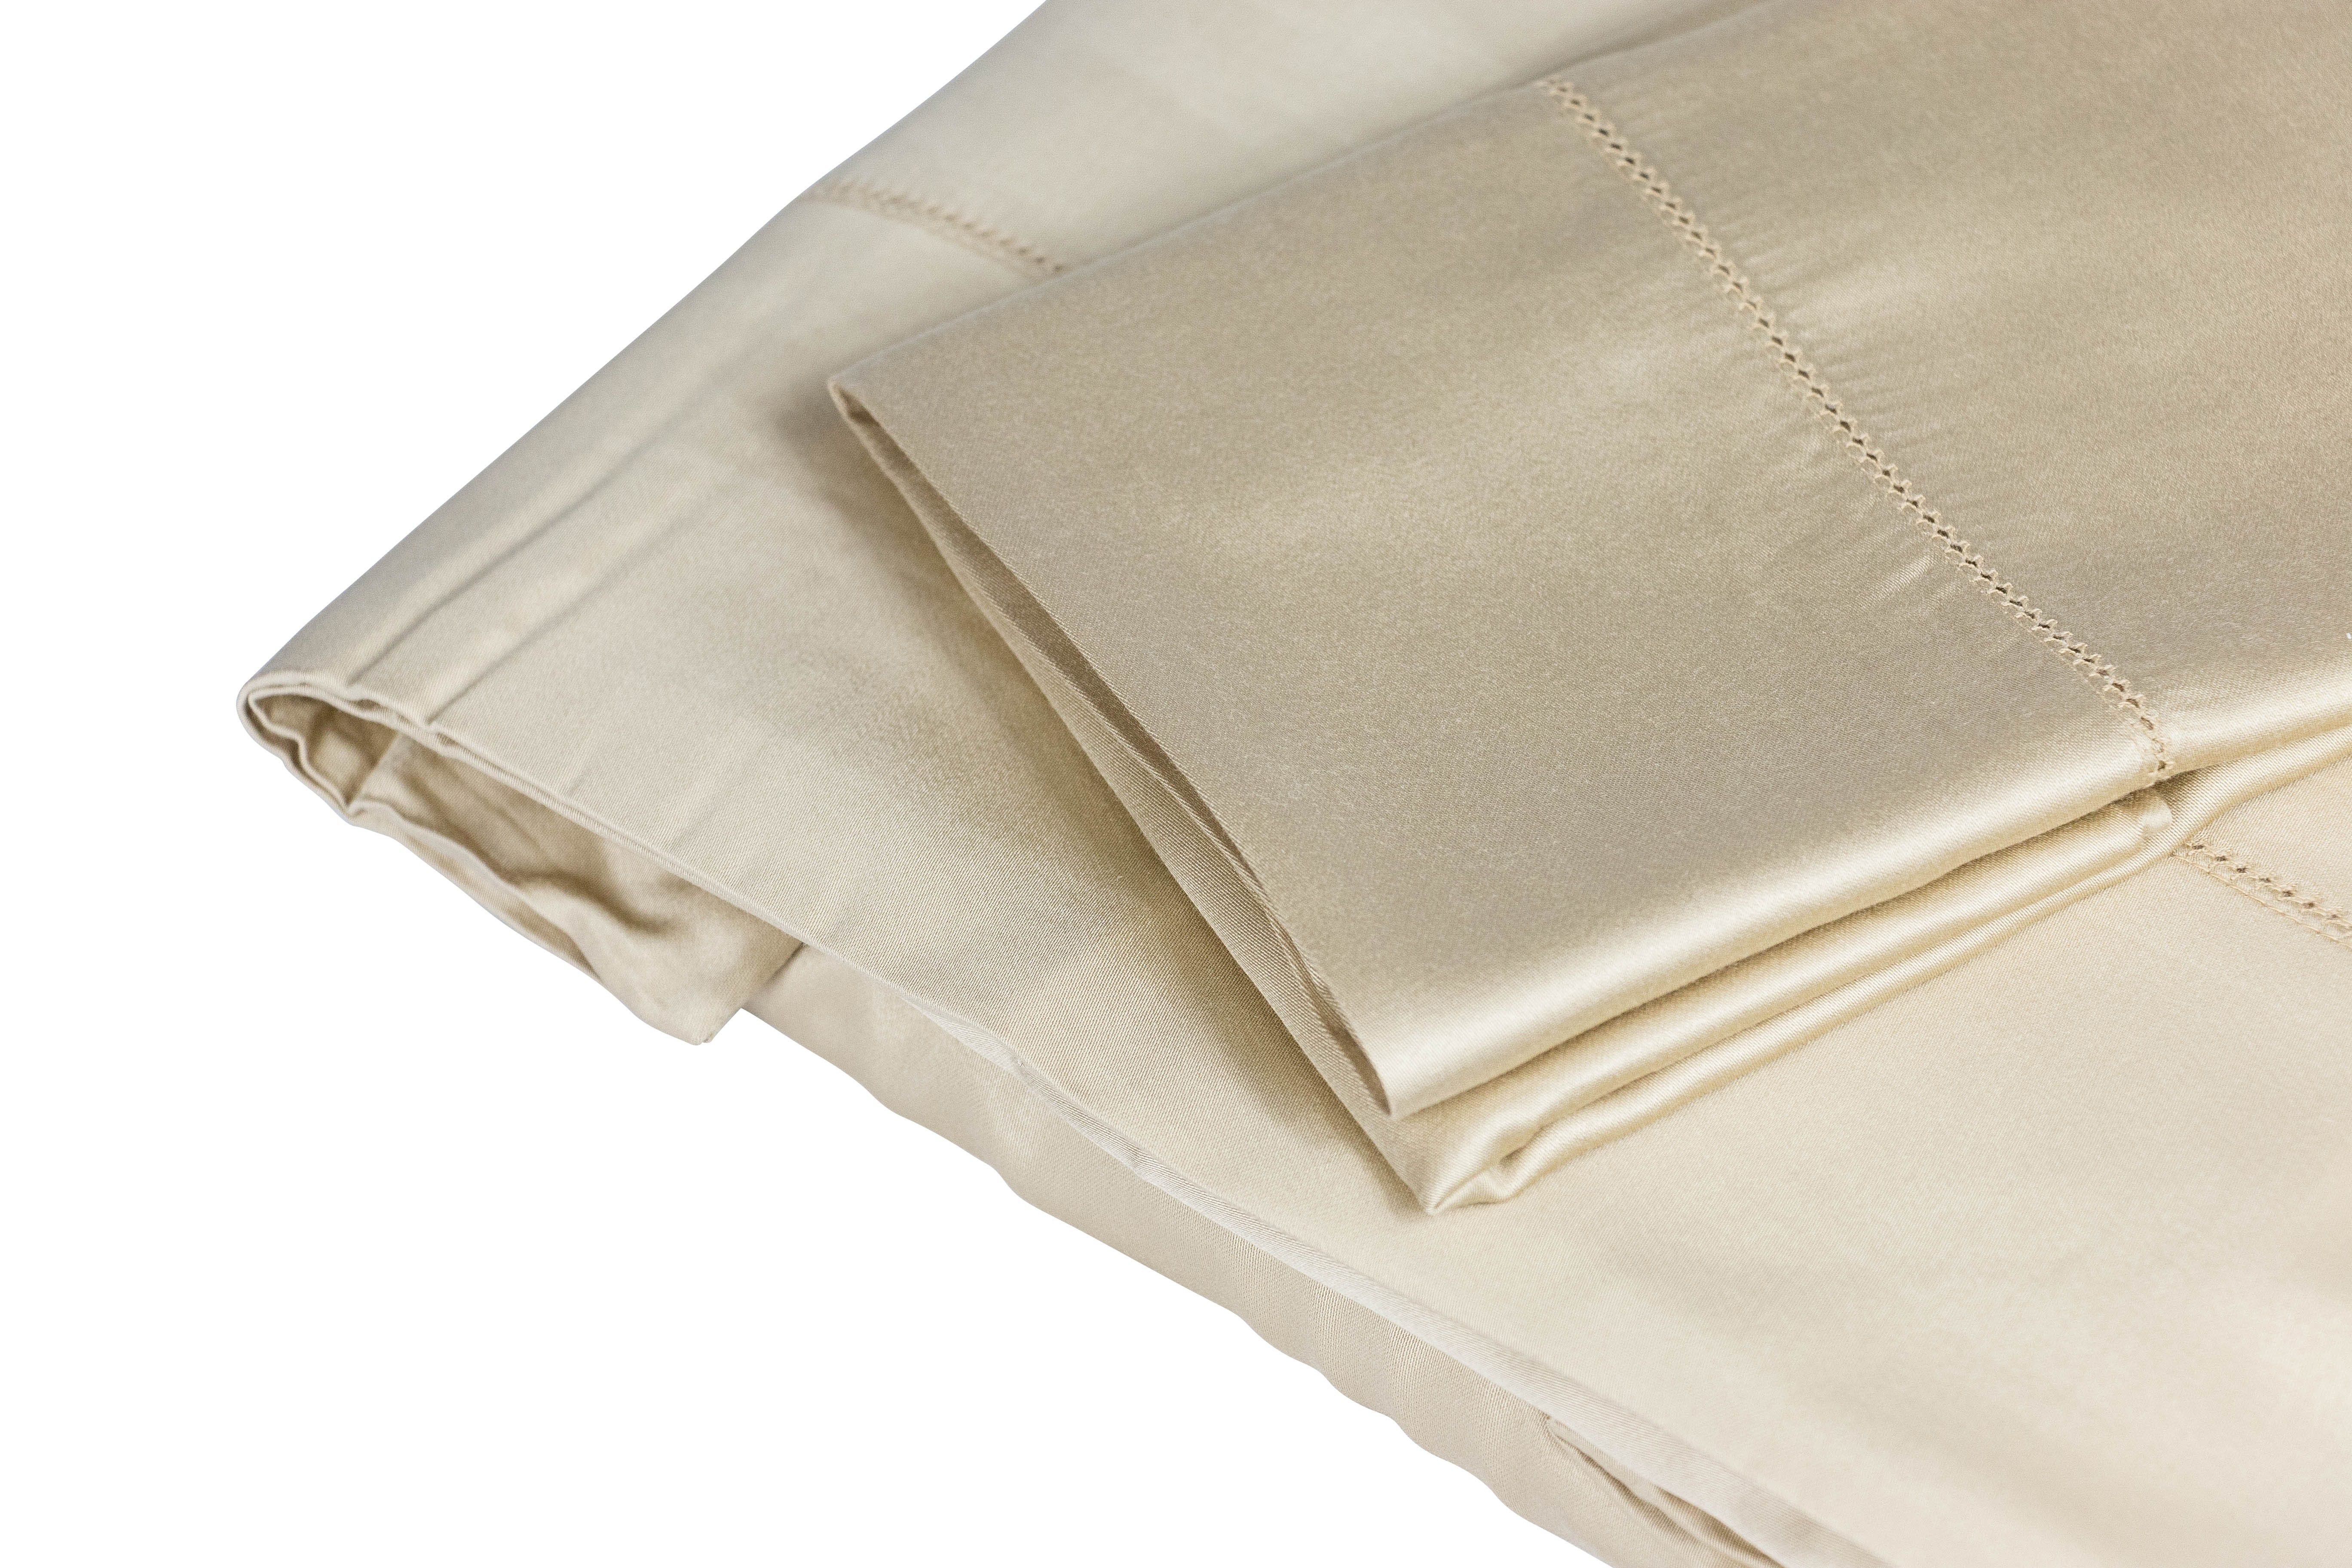 Bamboo Sheet Facts Did You Know That Bamboo Sheets Are Made Of